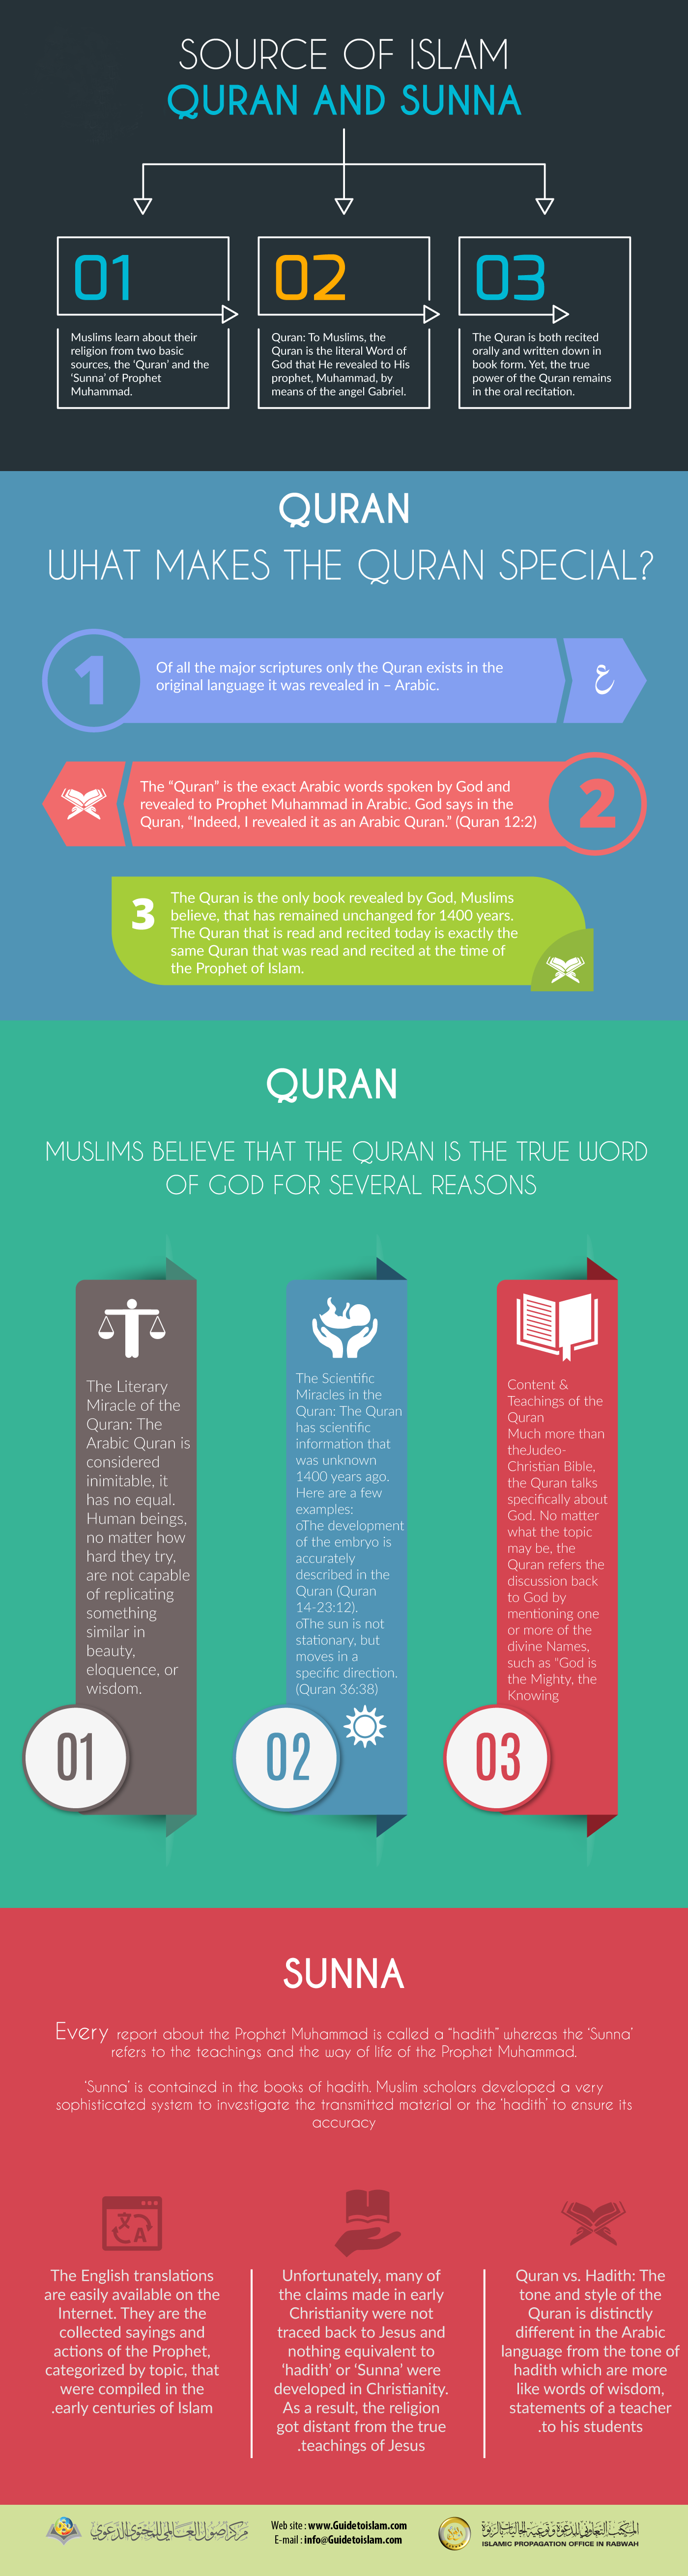 source of  Islam Quran and Sunna